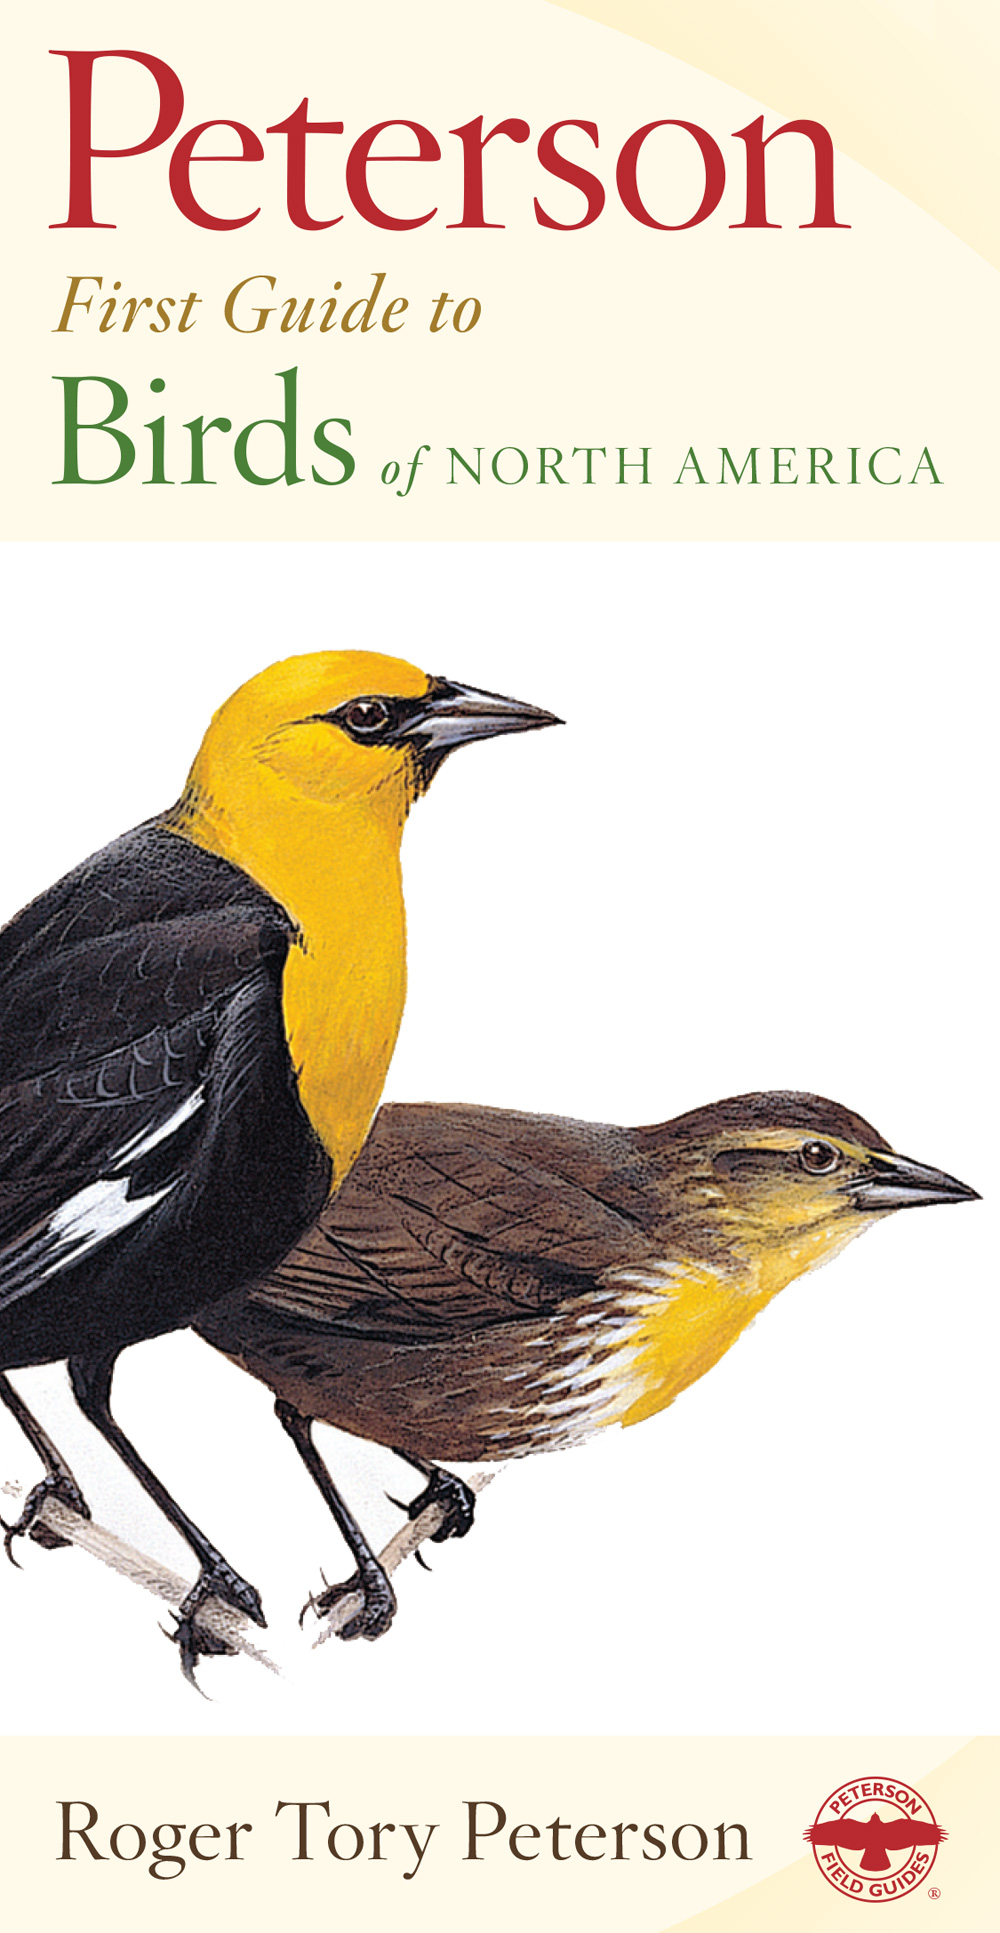 Peterson First Guide to Birds of North America-9780395906668